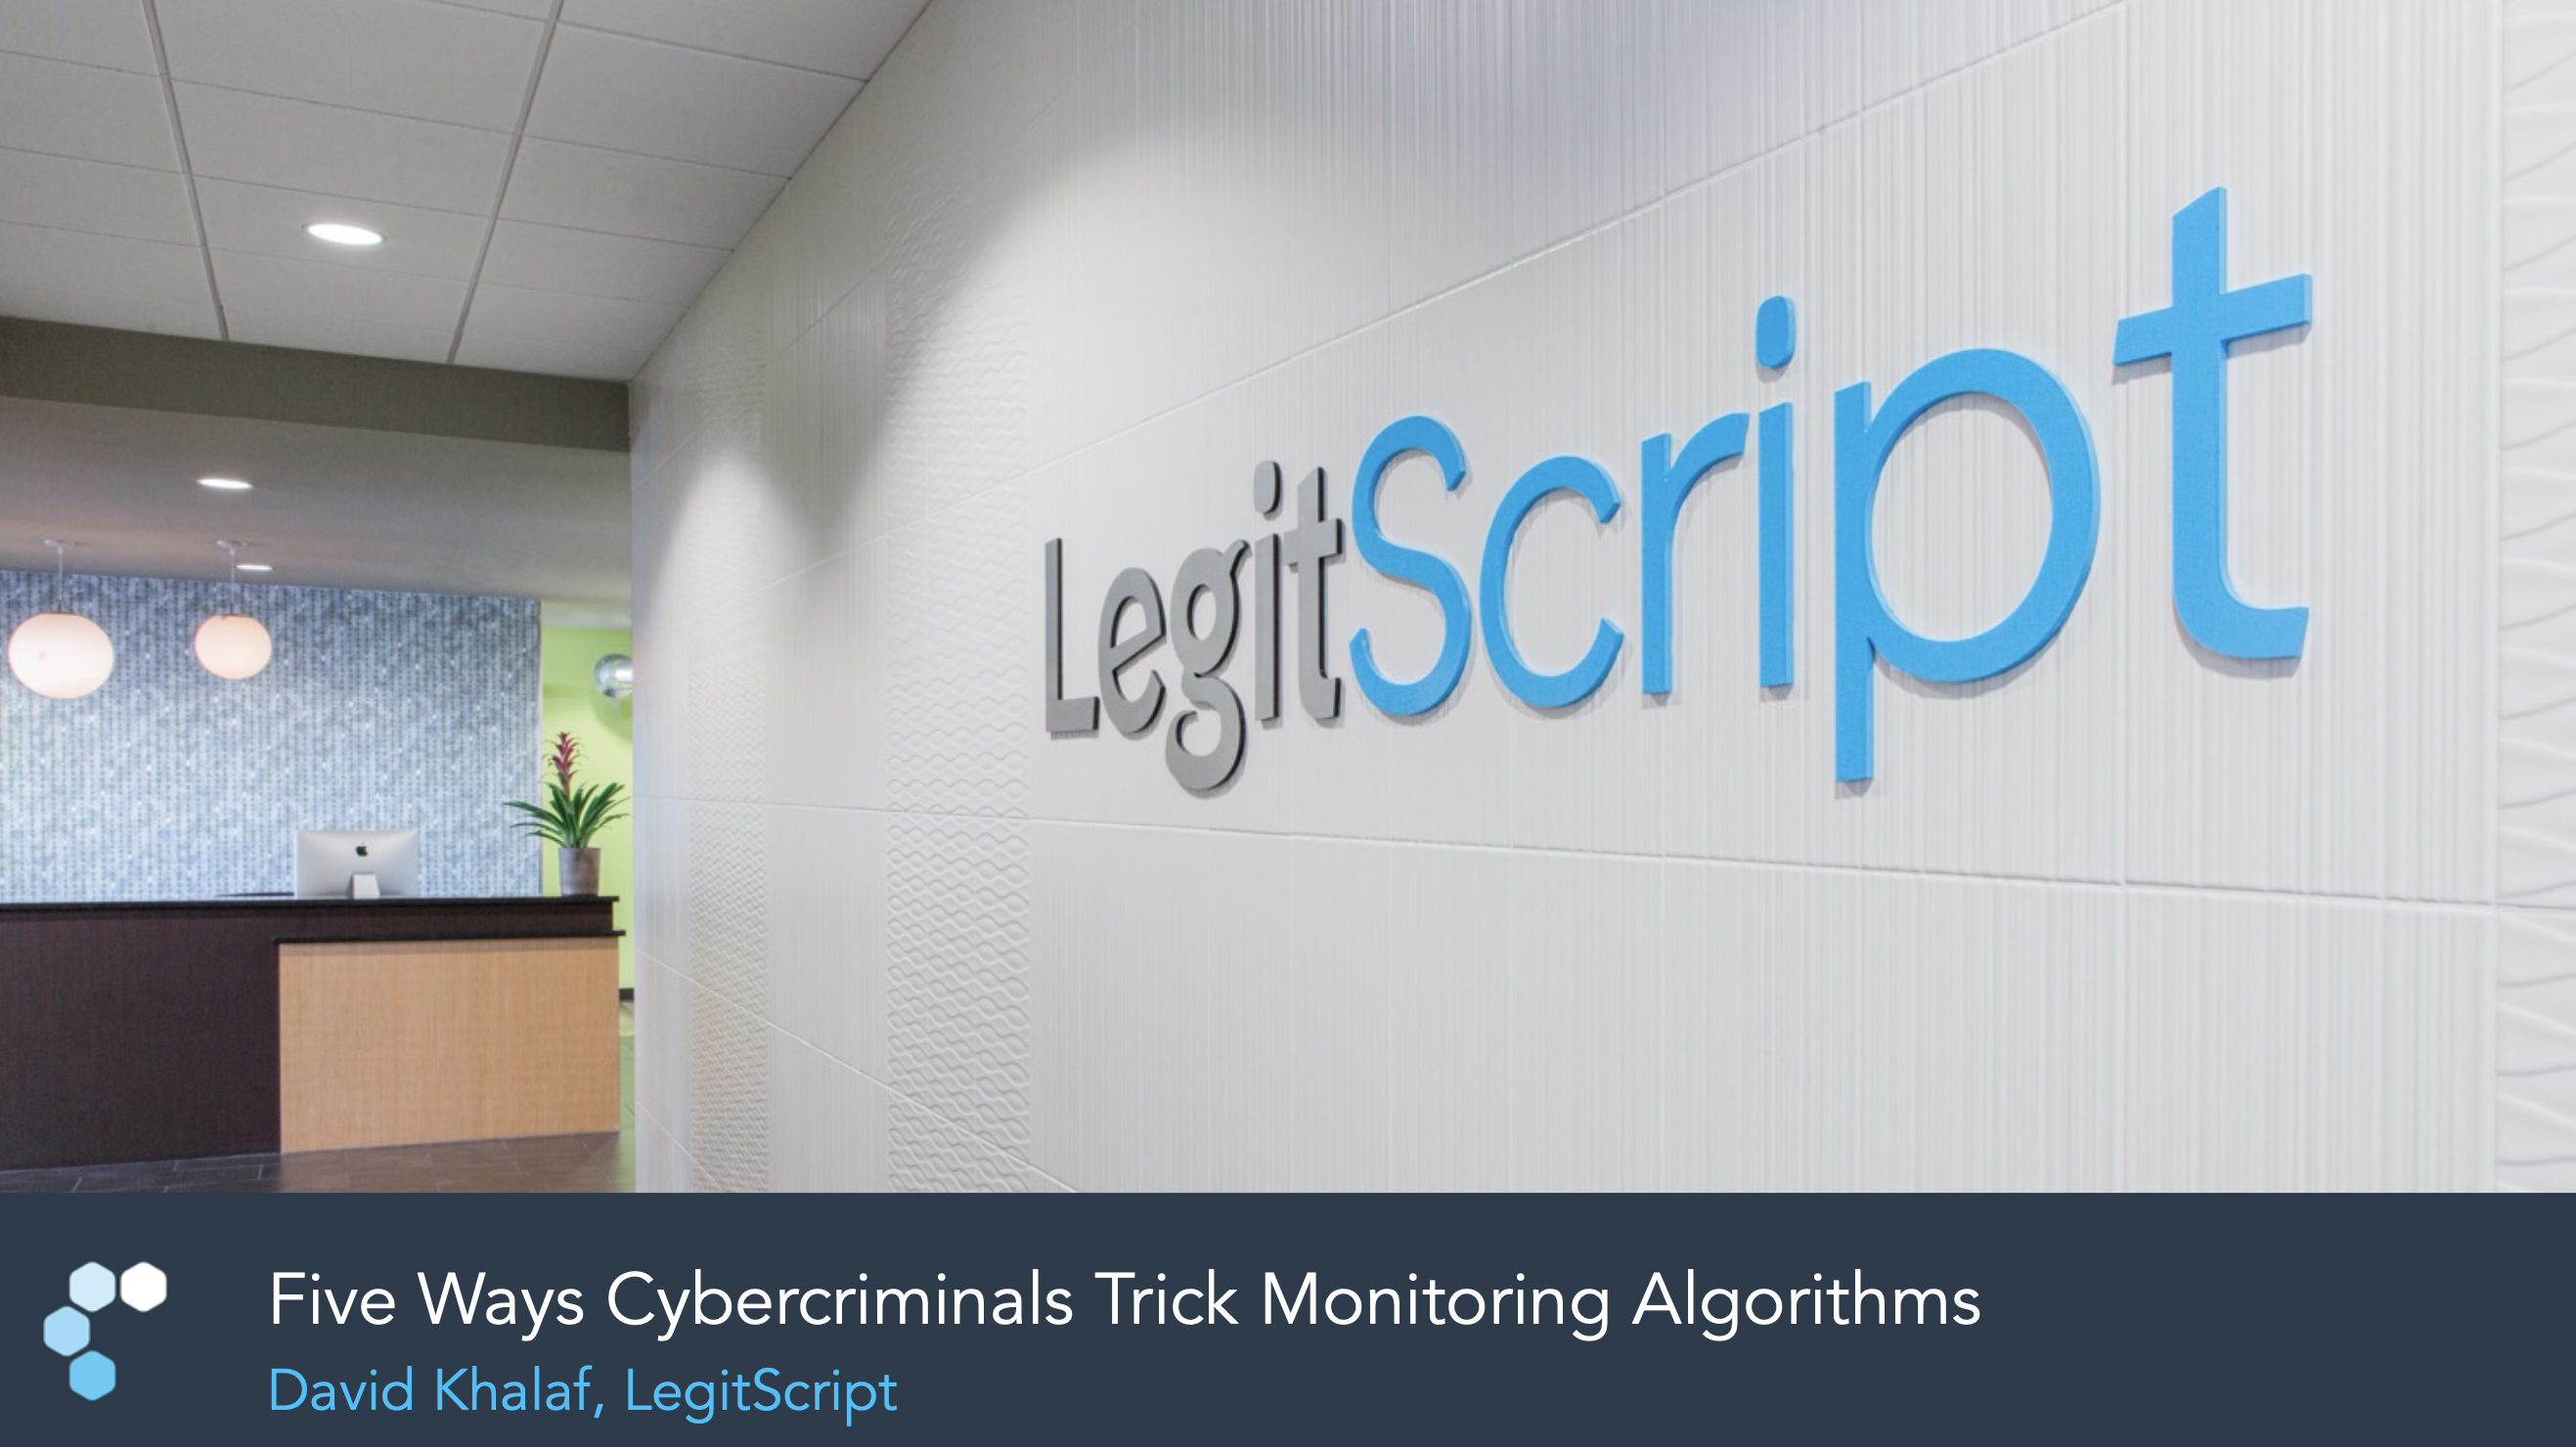 Cover of slide deck showing LegitScript's officers